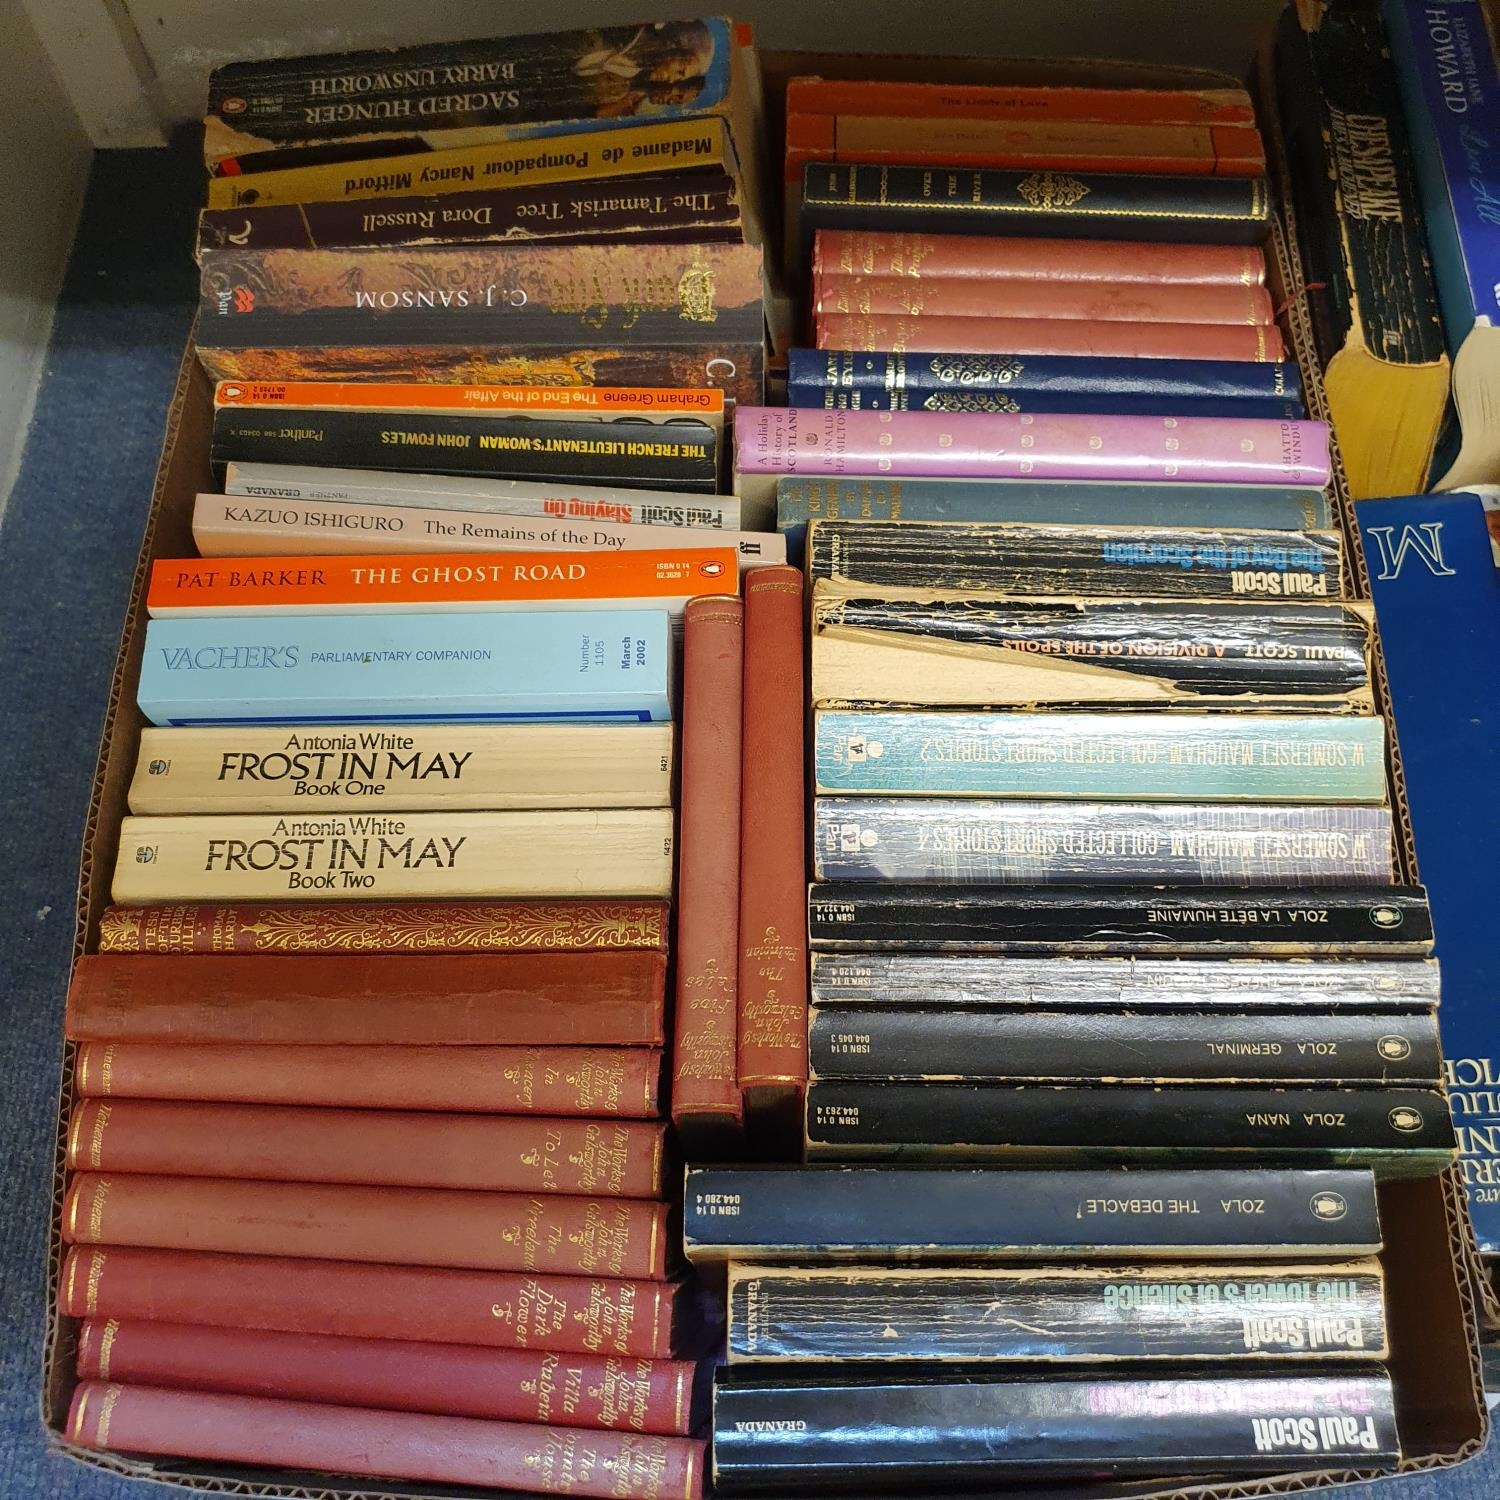 Hibbert (Christopher) London, and a large group of other books (19 boxes) - Image 21 of 21